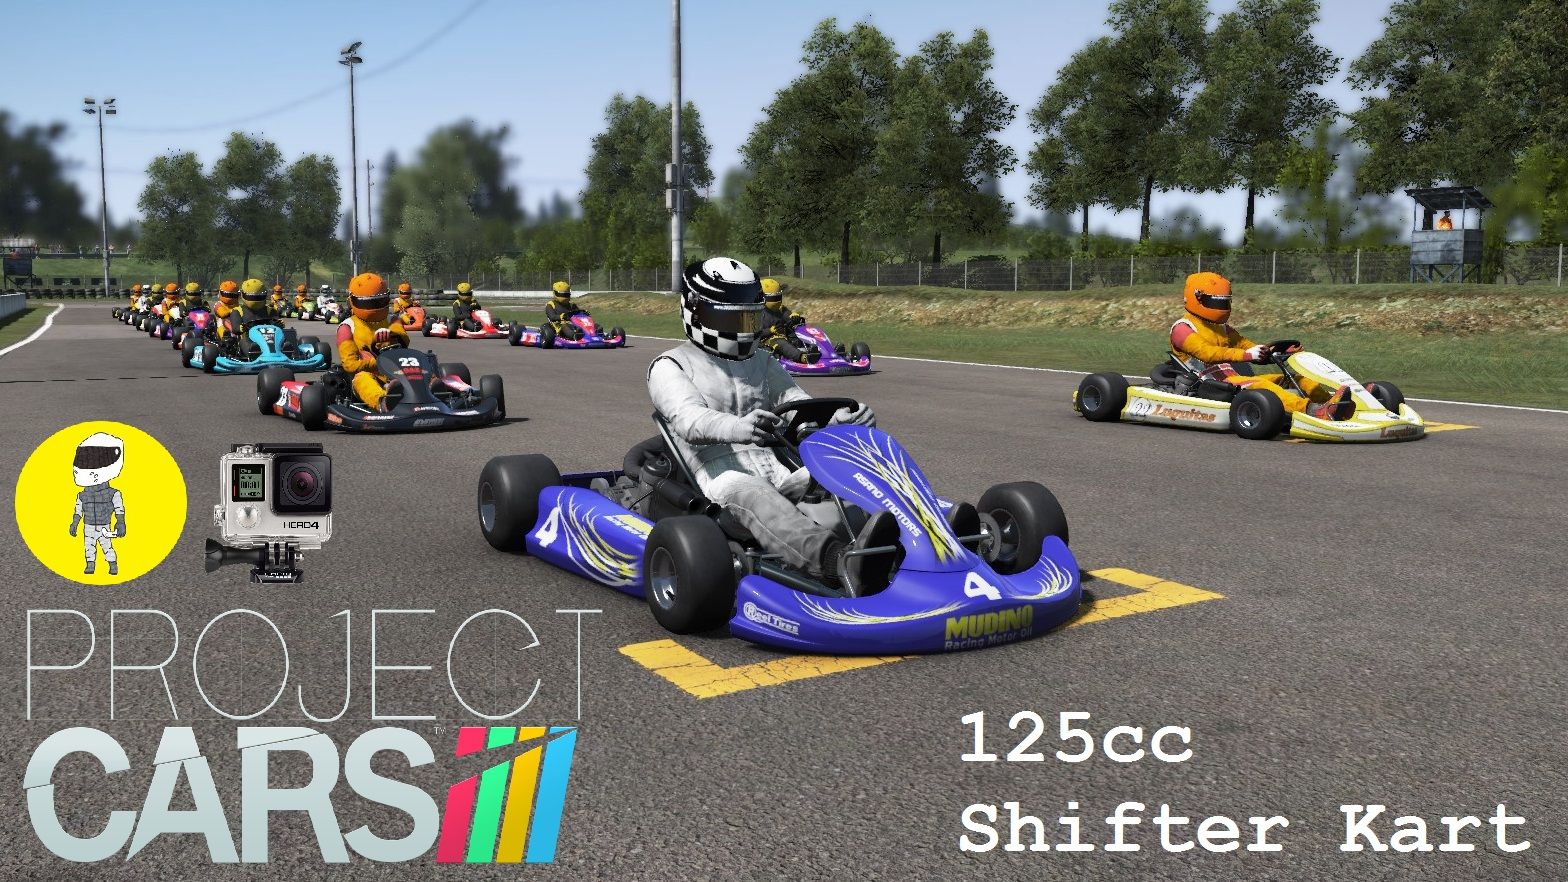 Project Cars - 125cc Shifter Kart @ CHESTERFIELD (TH300RS, GoPro ...